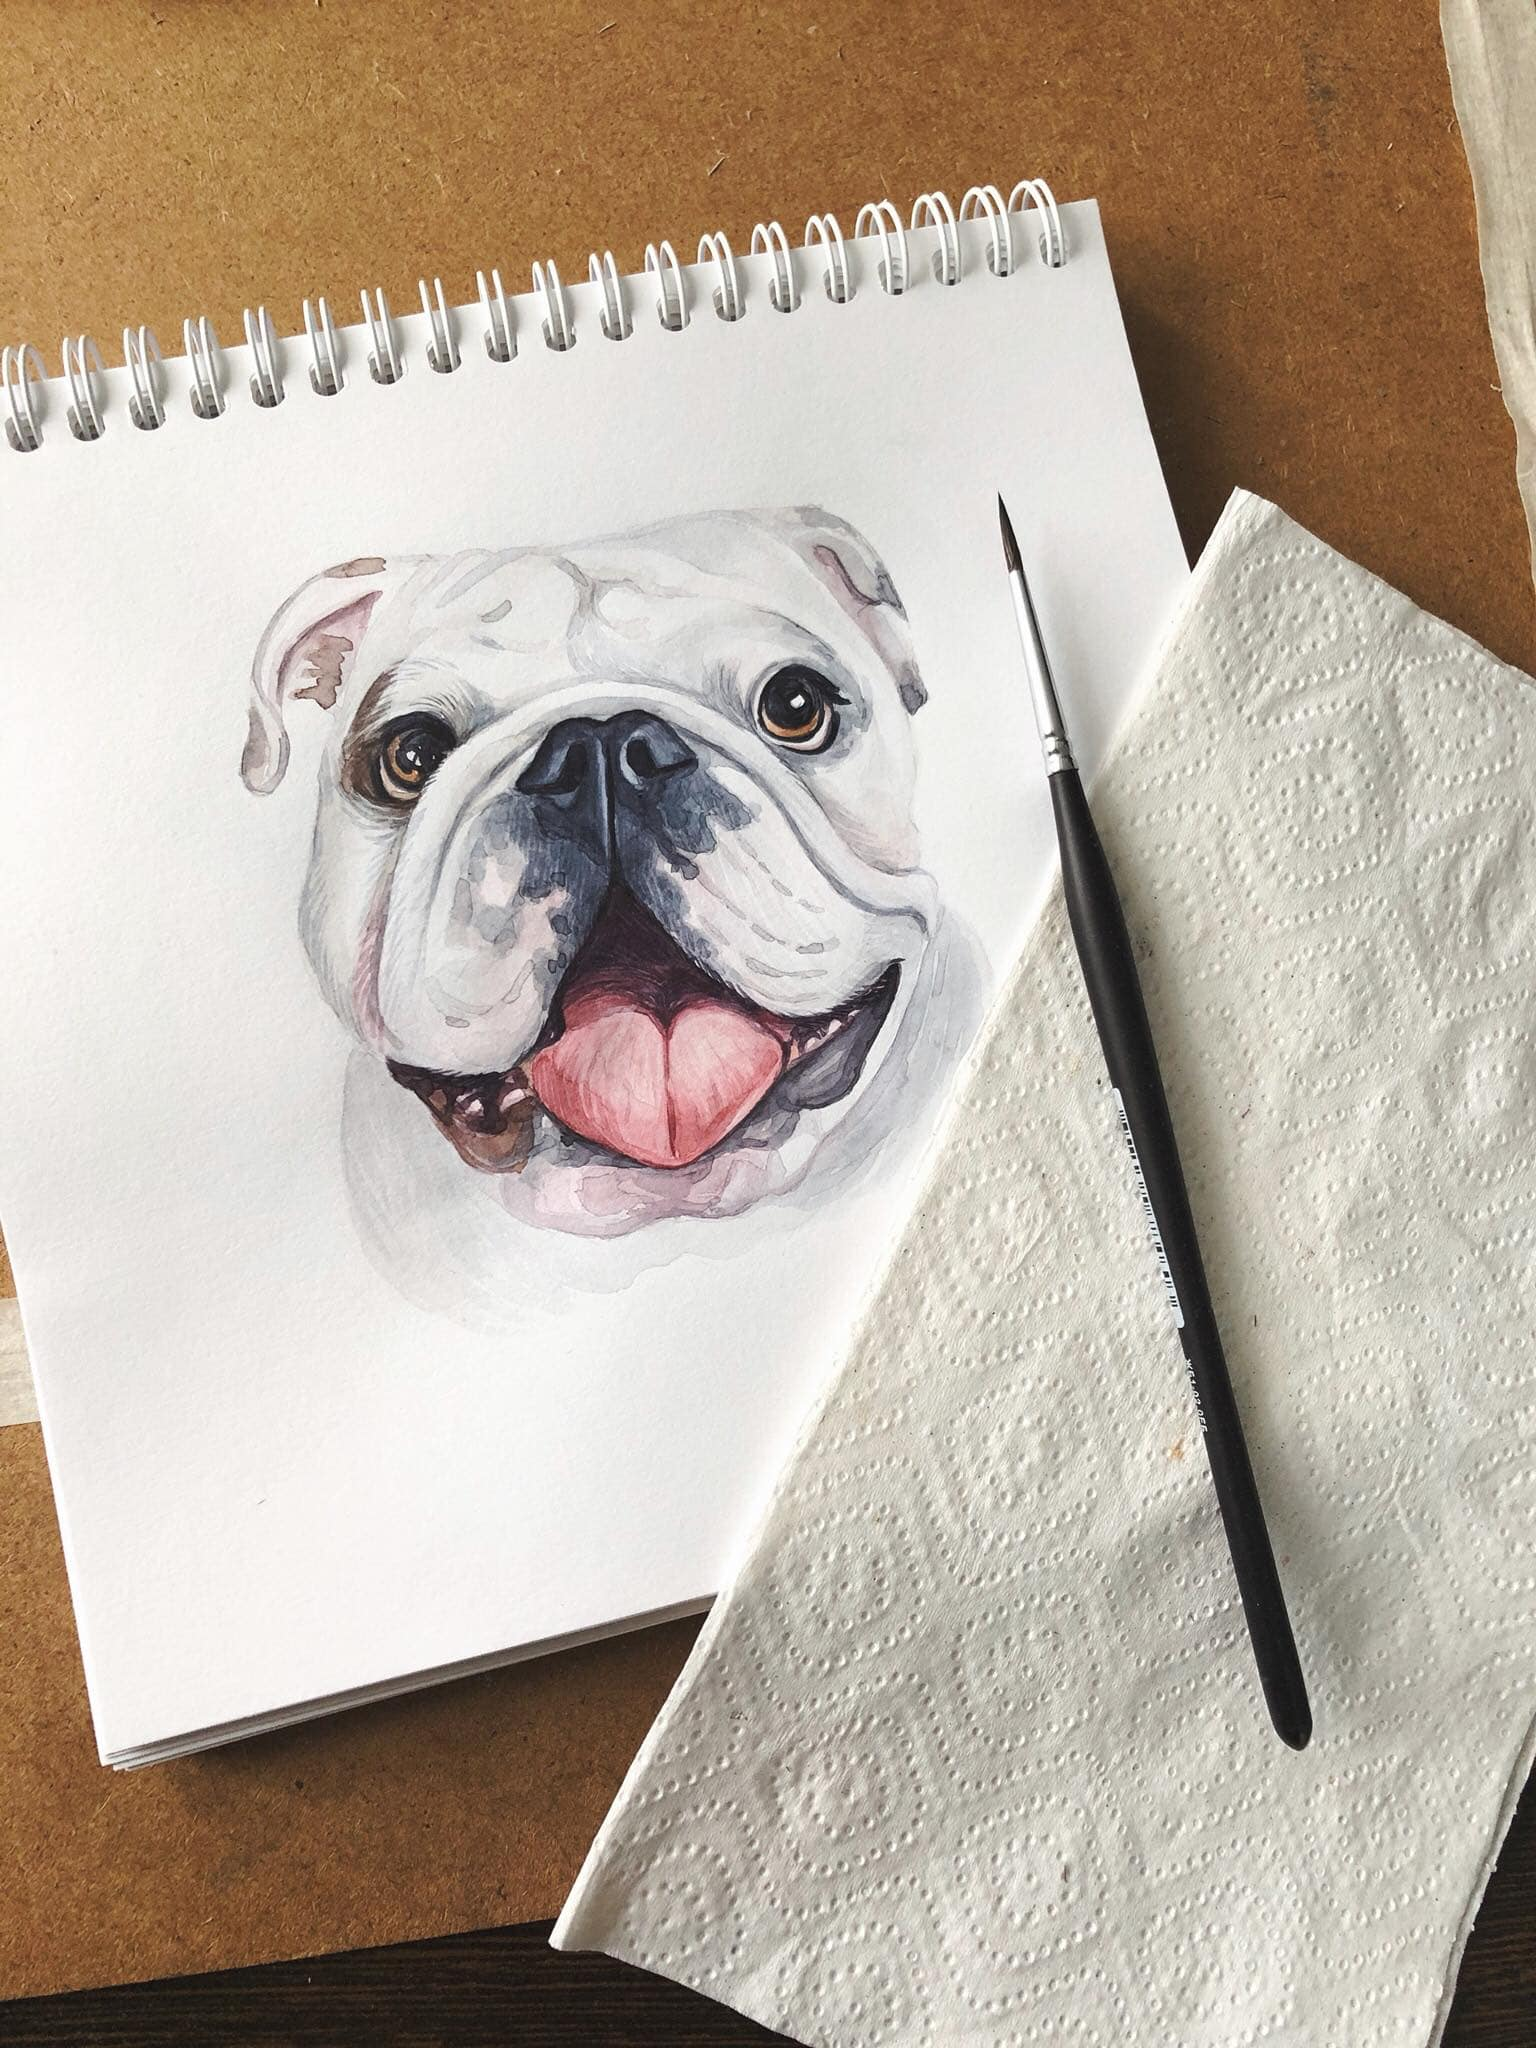 Watercolor art of a dog by Varleria Susik